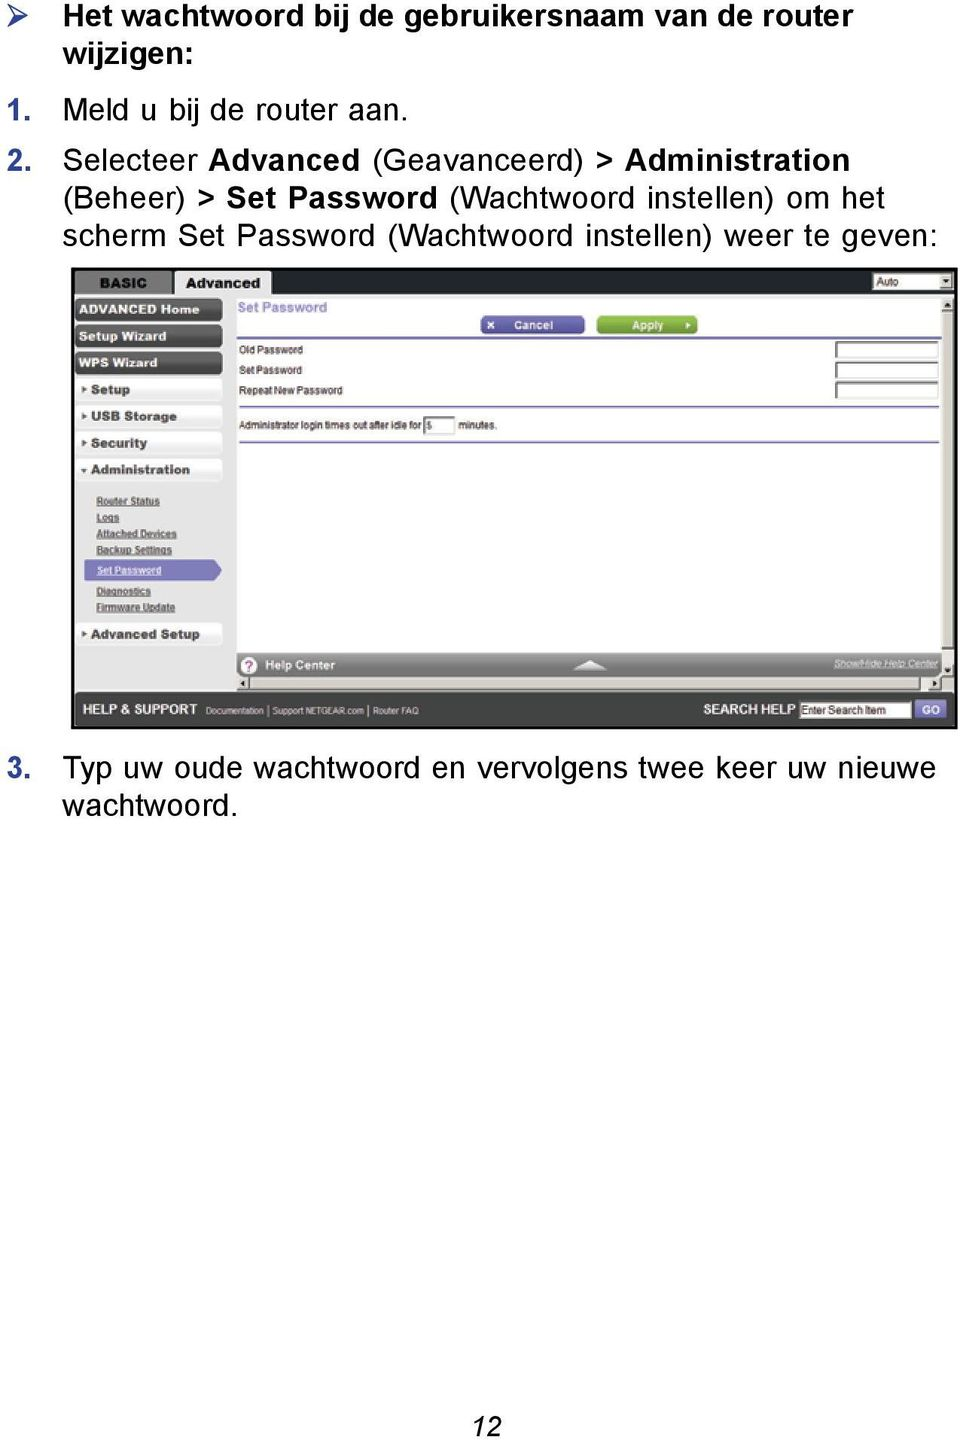 Selecteer Advanced (Geavanceerd) > Administration (Beheer) > Set Password